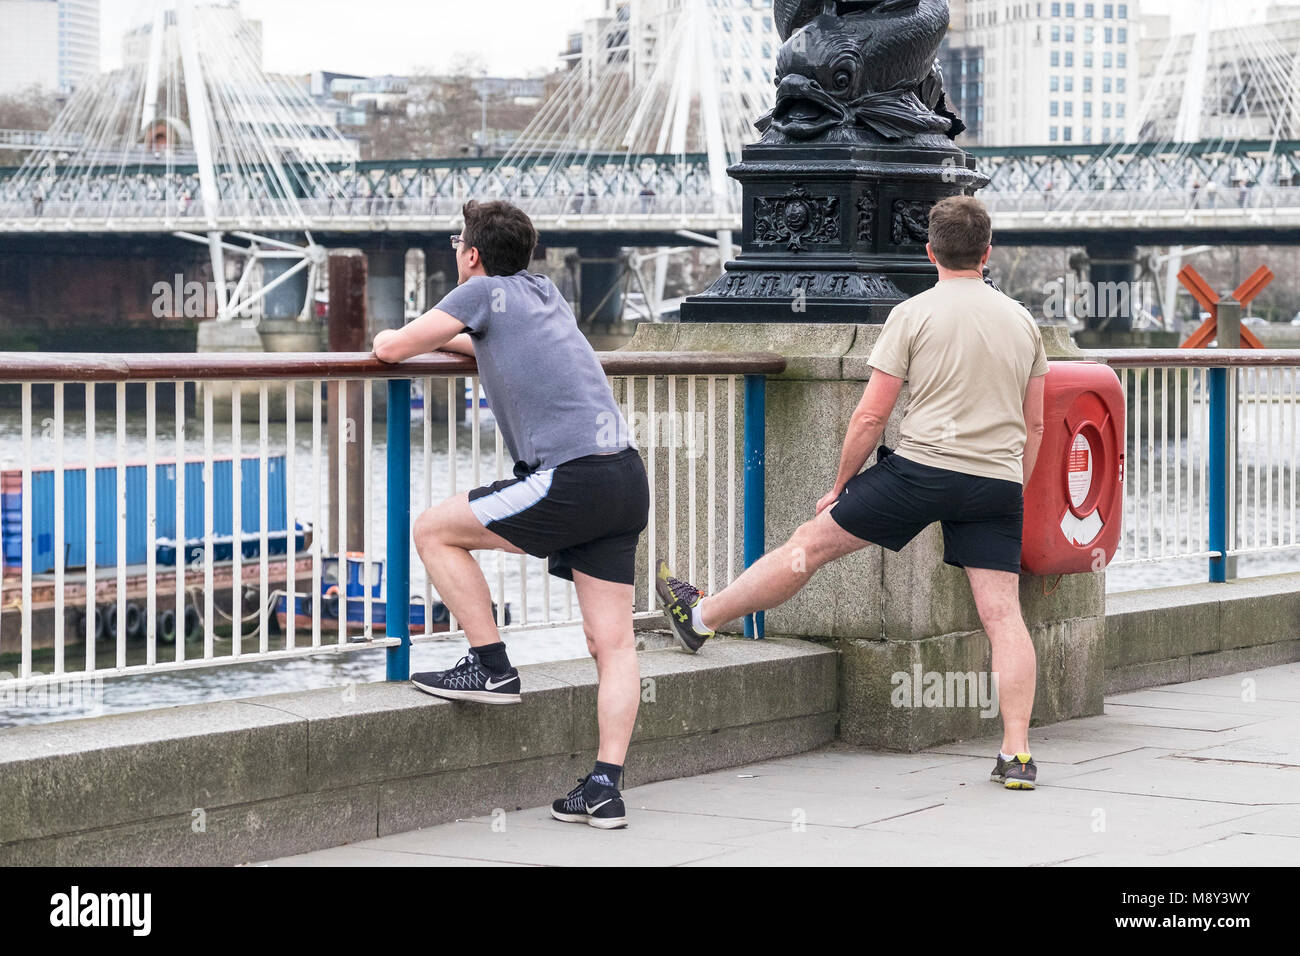 Runners stretching before a run on the Southbank in London. - Stock Image